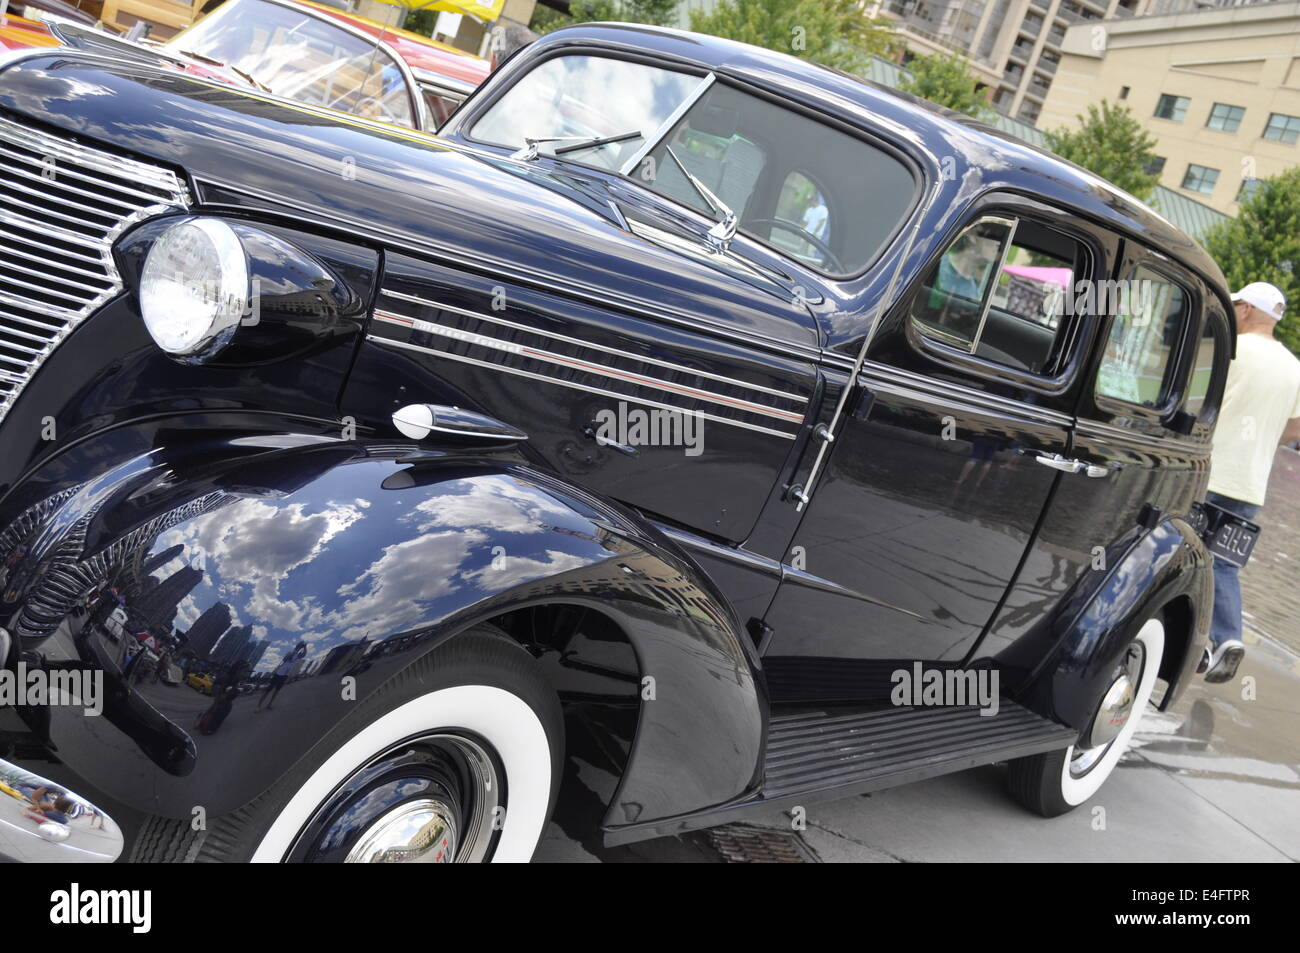 classic old car - Stock Image